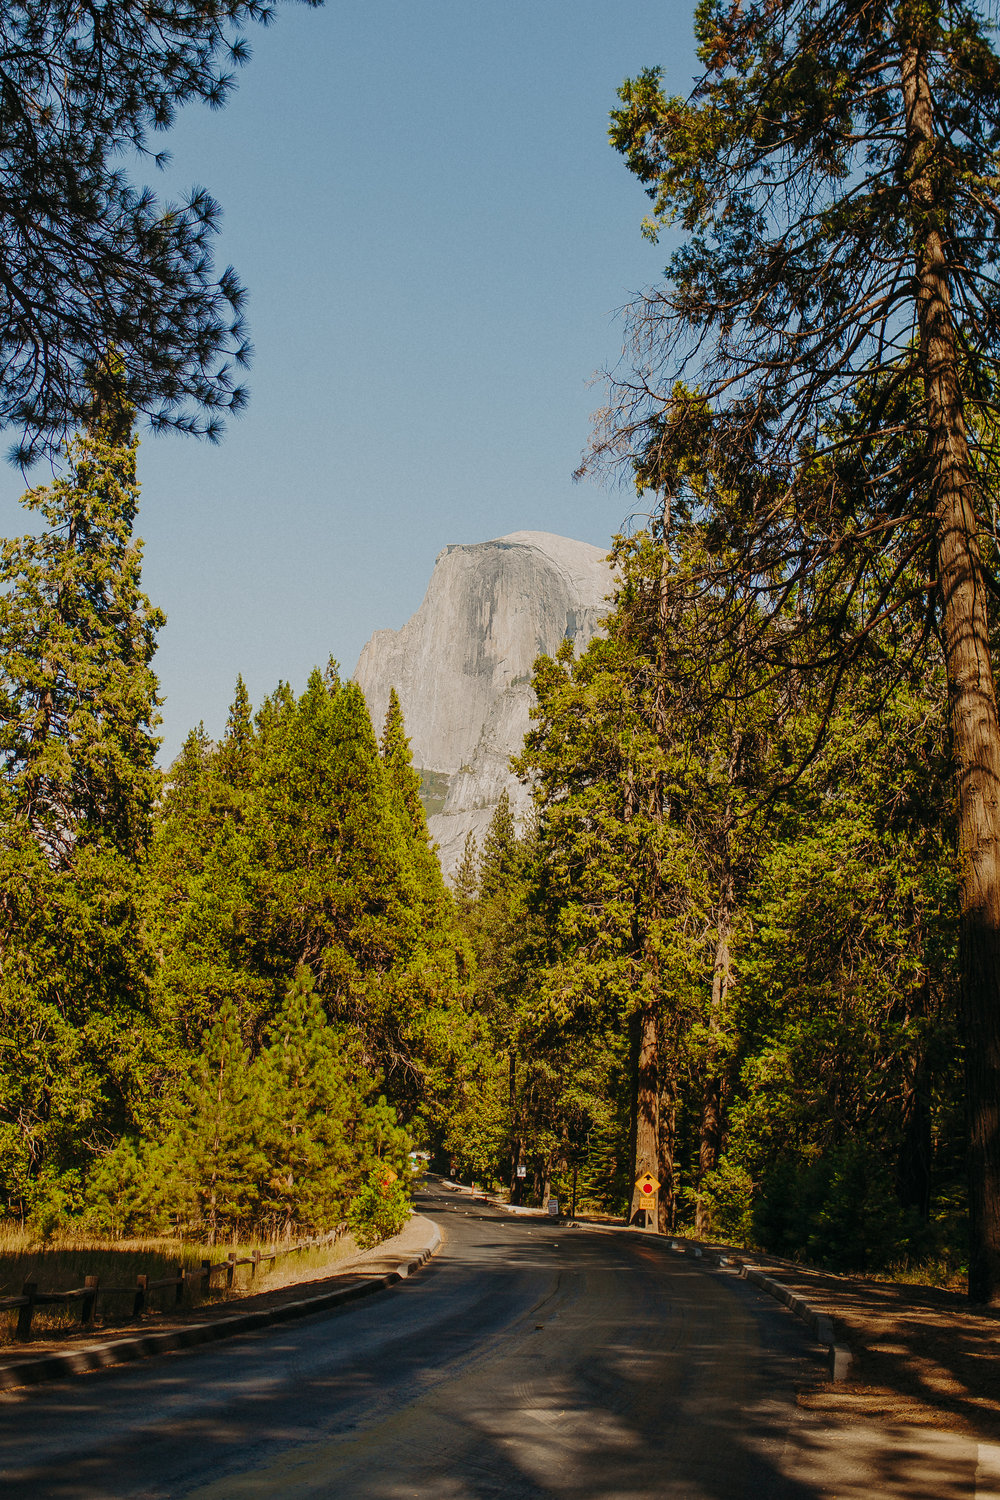 Visit-Yosemite-National-Park-Pictures-California-17.jpg